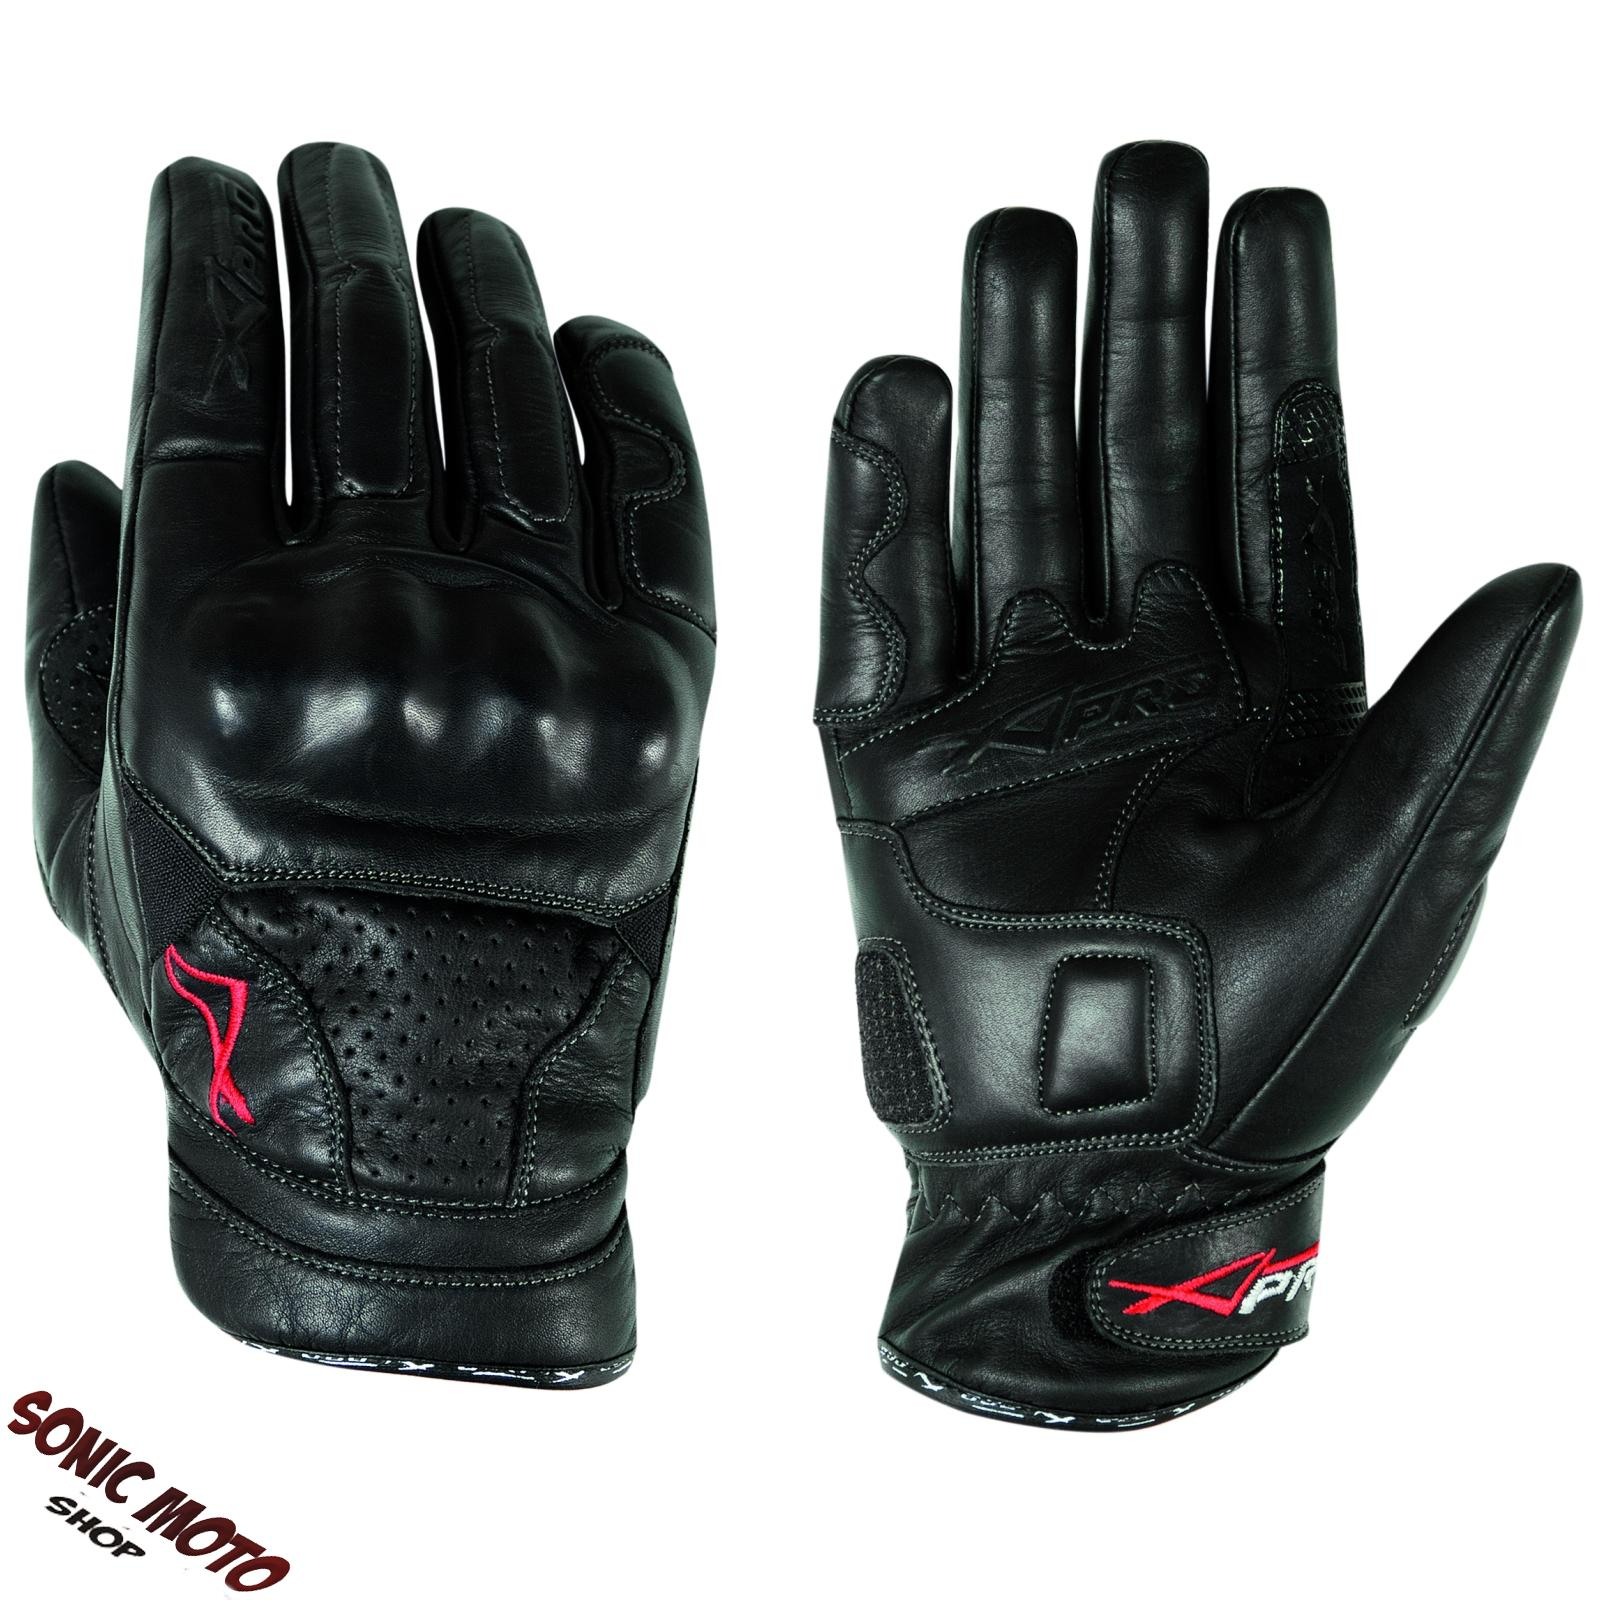 gants motard moto cuir protection phalanges et racing motocross quad mx ebay. Black Bedroom Furniture Sets. Home Design Ideas